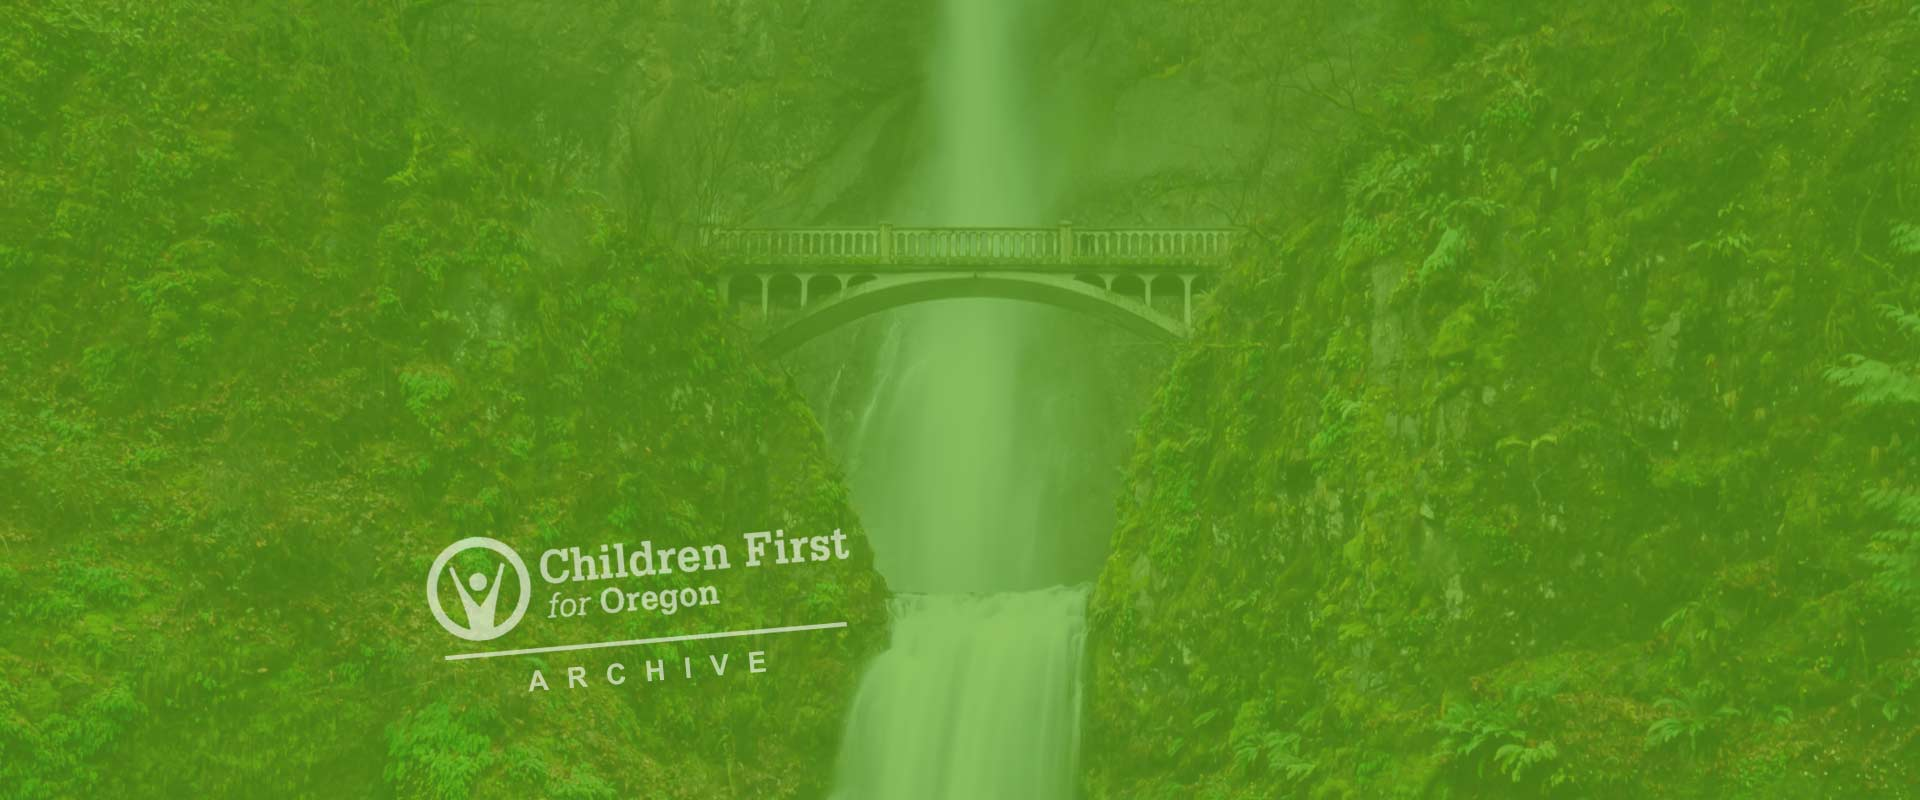 Foster youth lobby Oregon lawmakers to expand independent living program